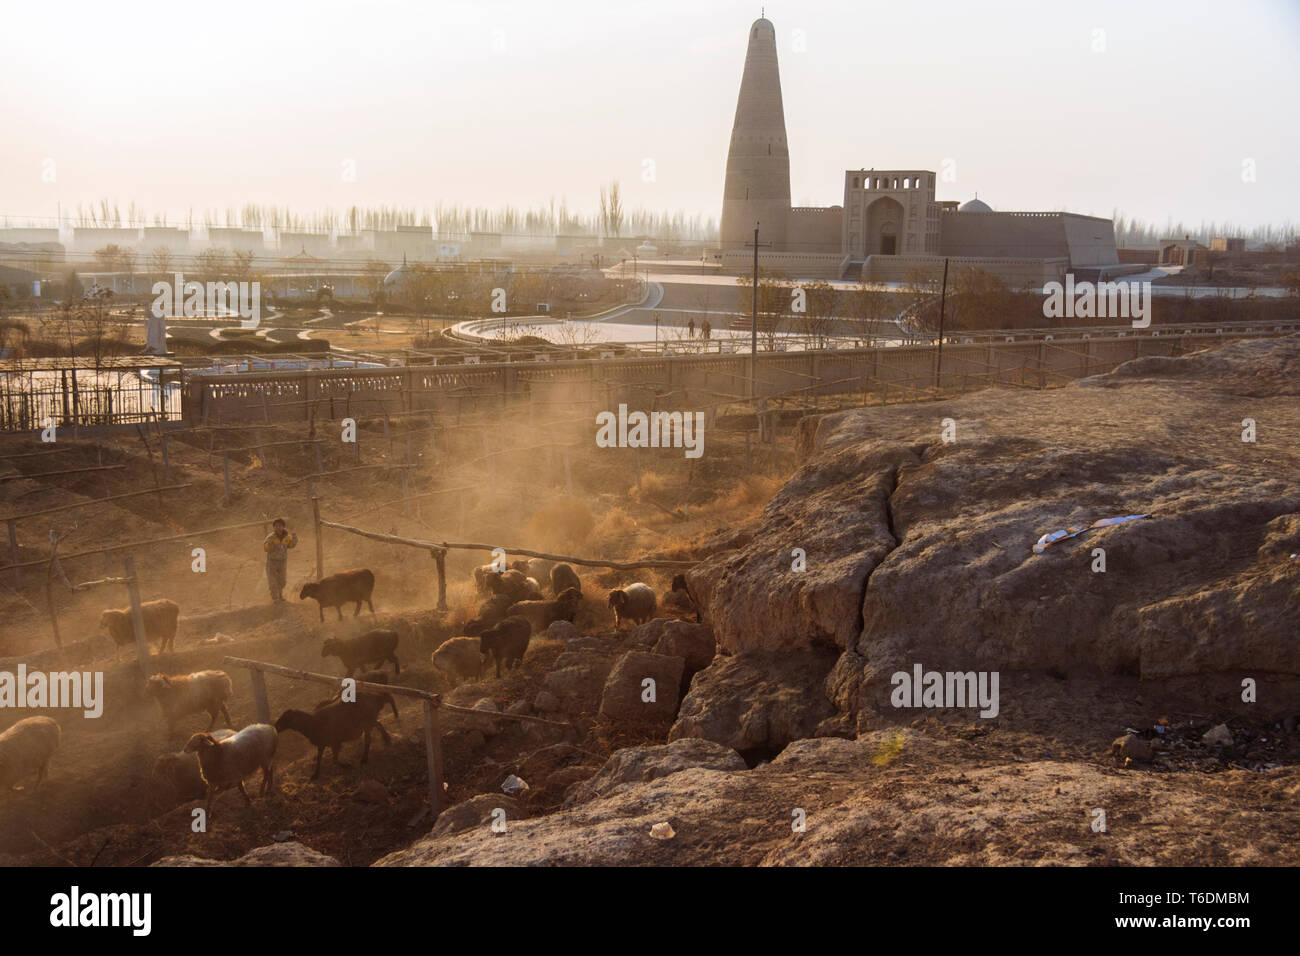 Turpan, Xinjiang, China : Shepherds take a flock of sheep at sunset, past the 18th century Emin Minaret mosque. At 44 meters (144 ft) it is the talles - Stock Image